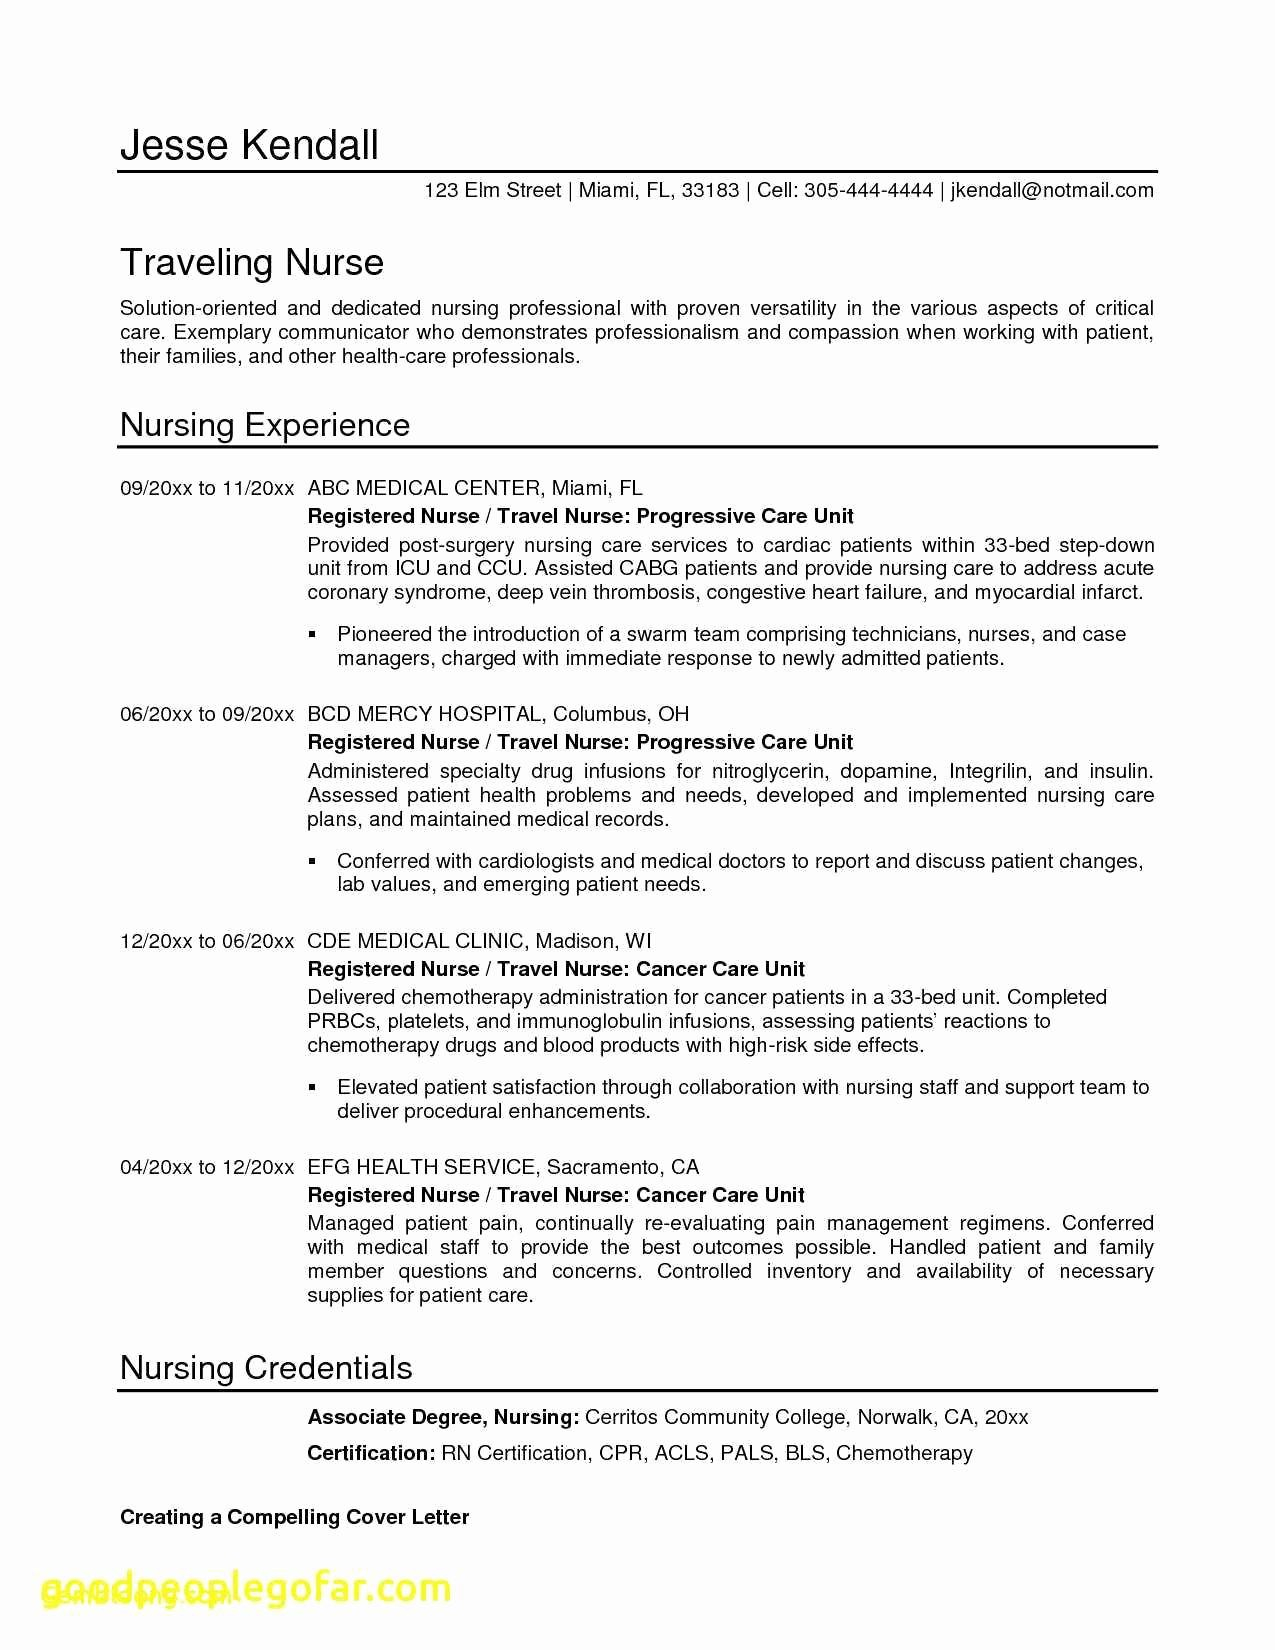 Professional Resume Service - 24 Model Professional Resume